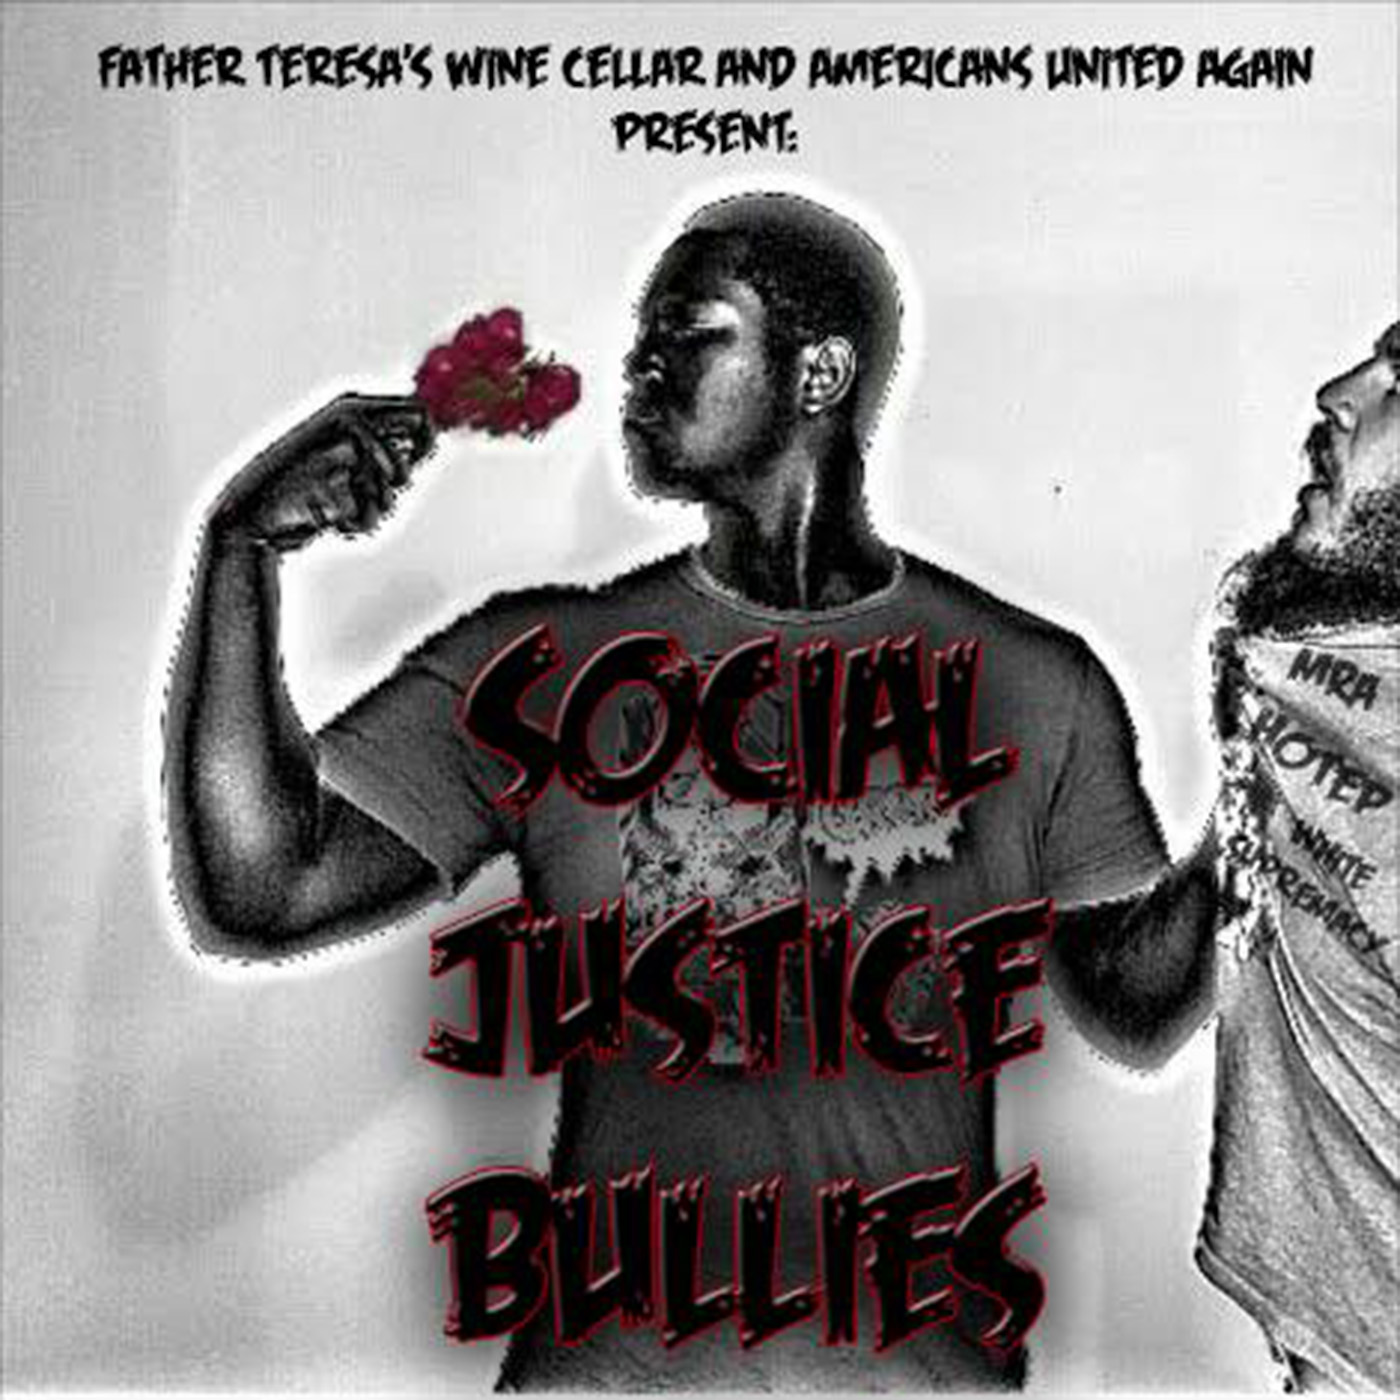 Father Teresa's Wine Cellar & Americans United Again Present: Social Justice Bullies - Americans United Again